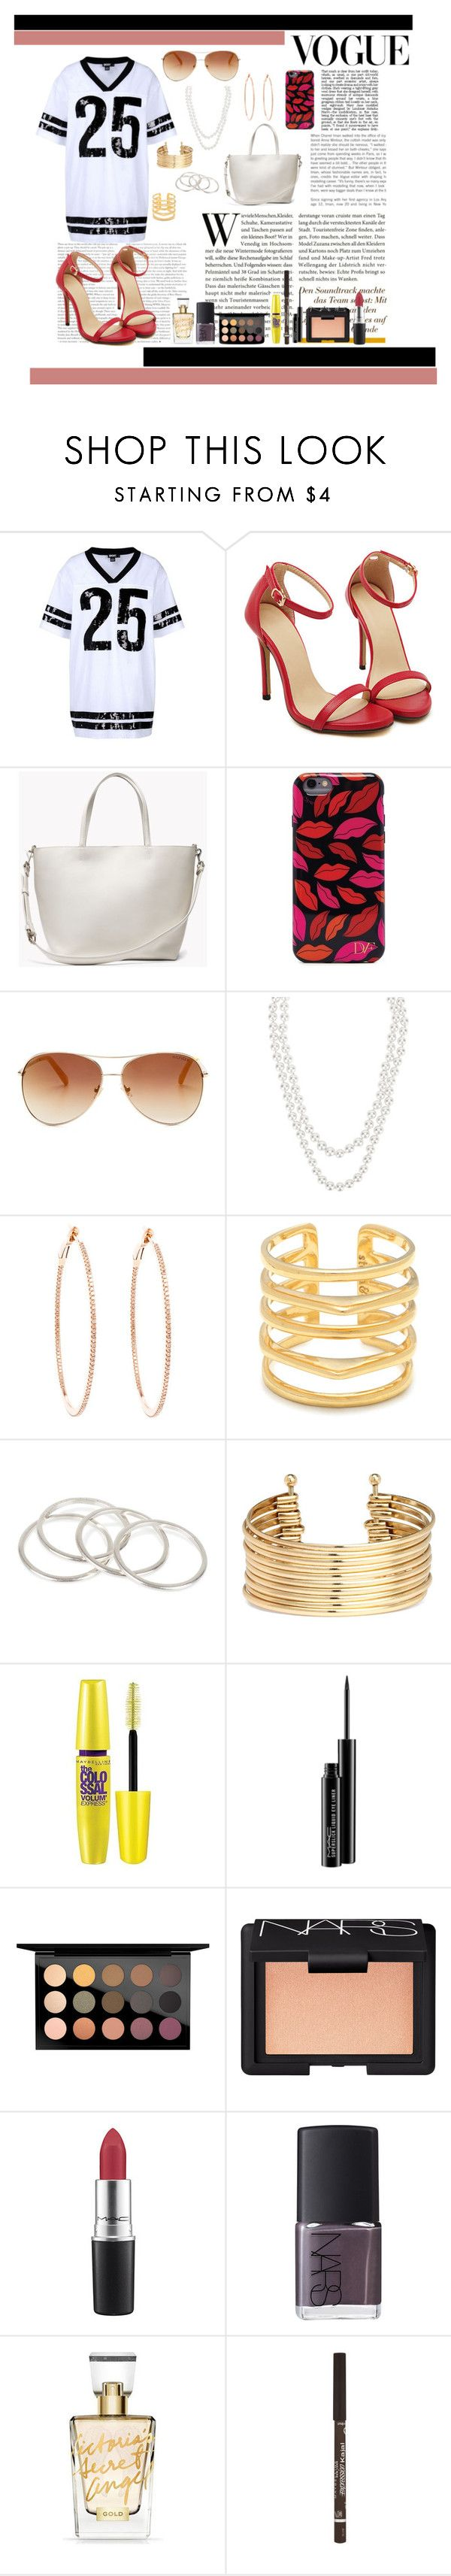 """""""Best Thing"""" by perfect-styles ❤ liked on Polyvore featuring beauty, DKNY, Theory, Diane Von Furstenberg, Tommy Hilfiger, Henri Bendel, Rosa de la Cruz, Stella & Dot, Vanessa Mooney and H&M"""